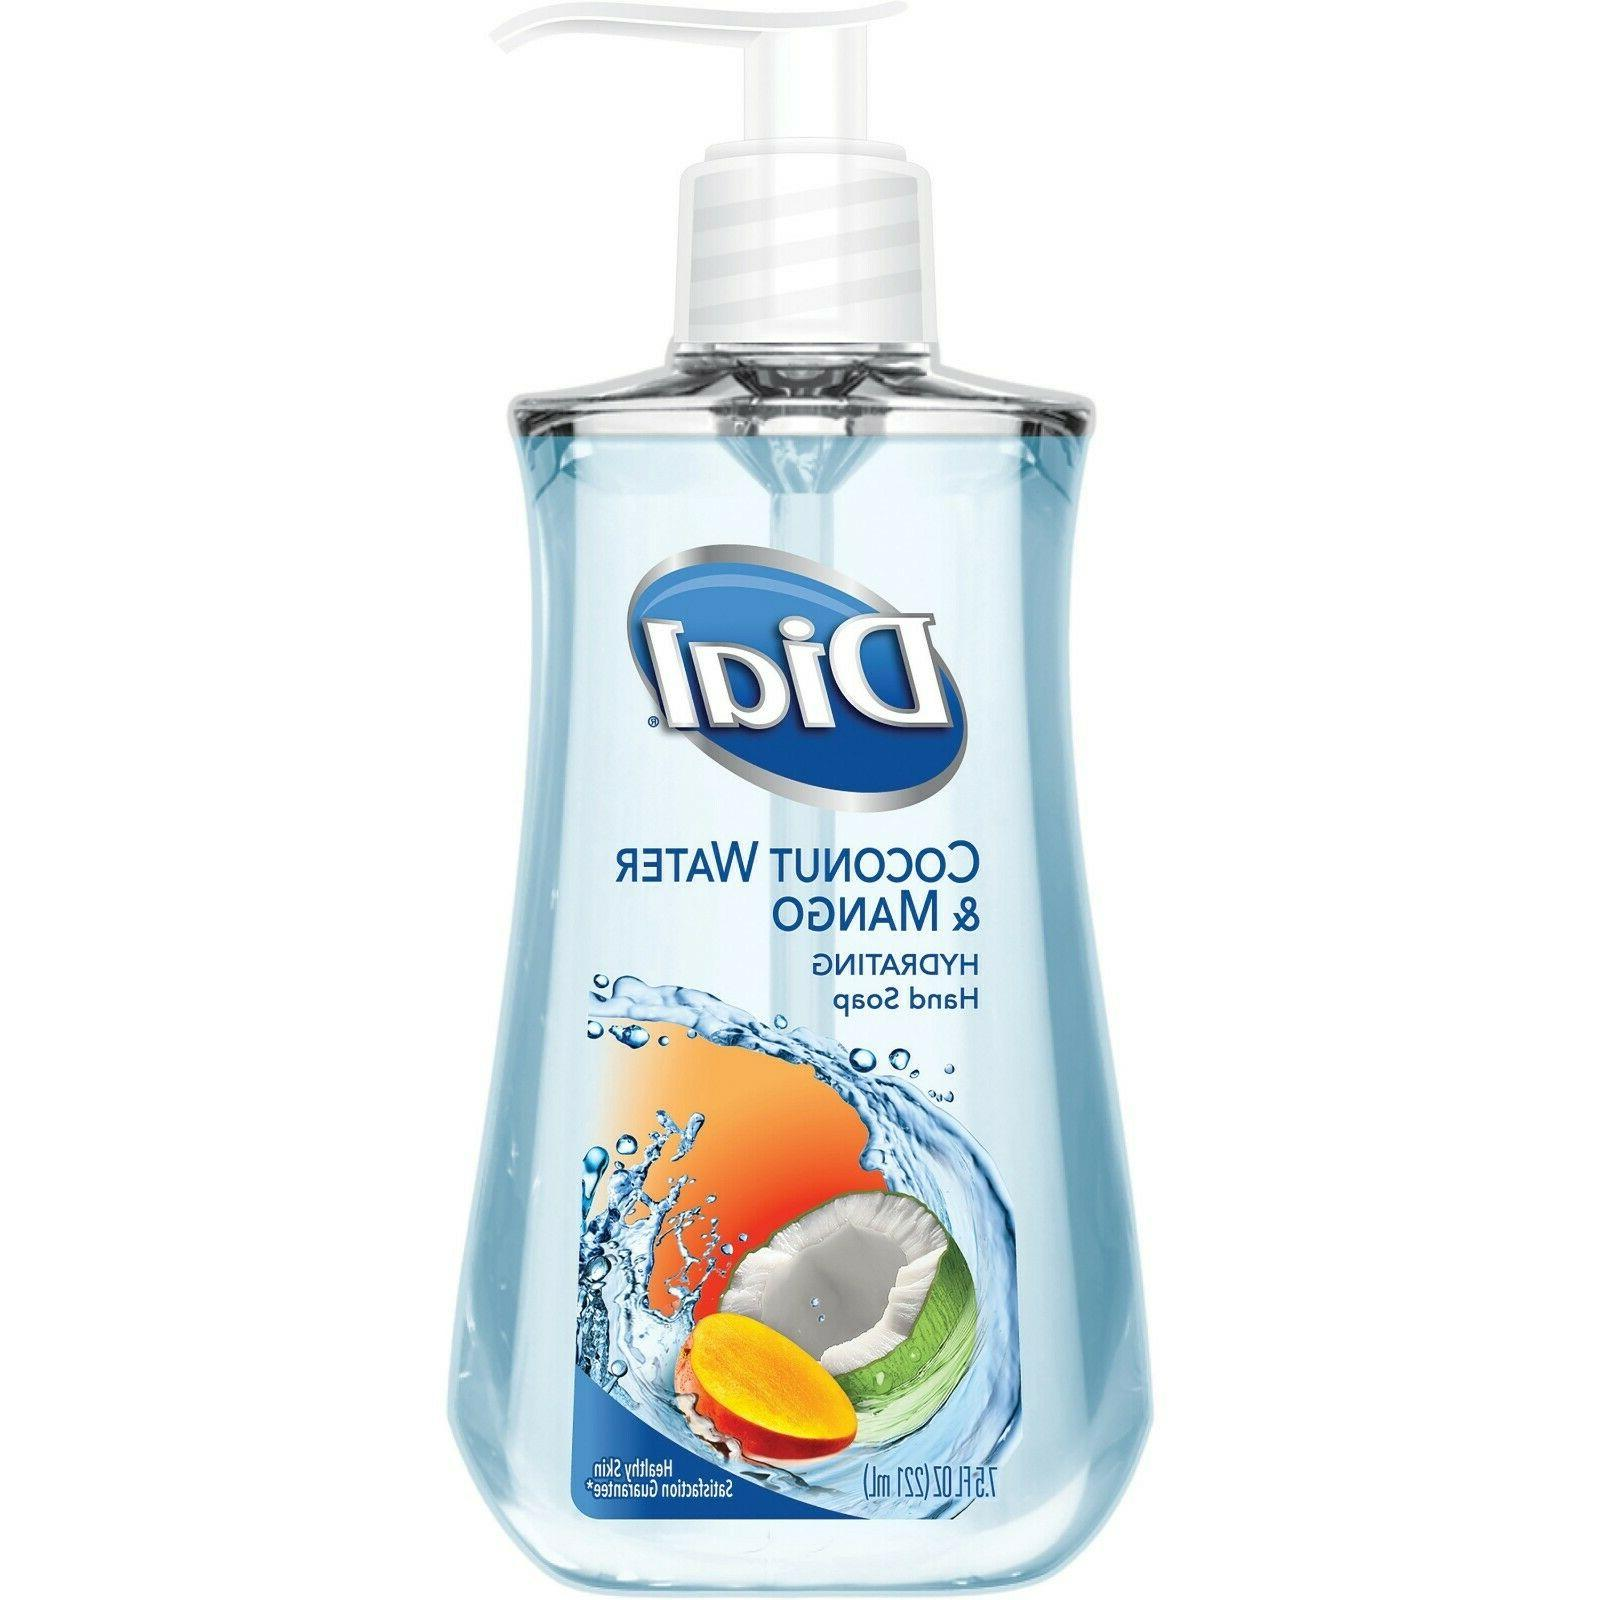 4 Dial Coconut Water Hydrating Hand Soap, 7.5 FL